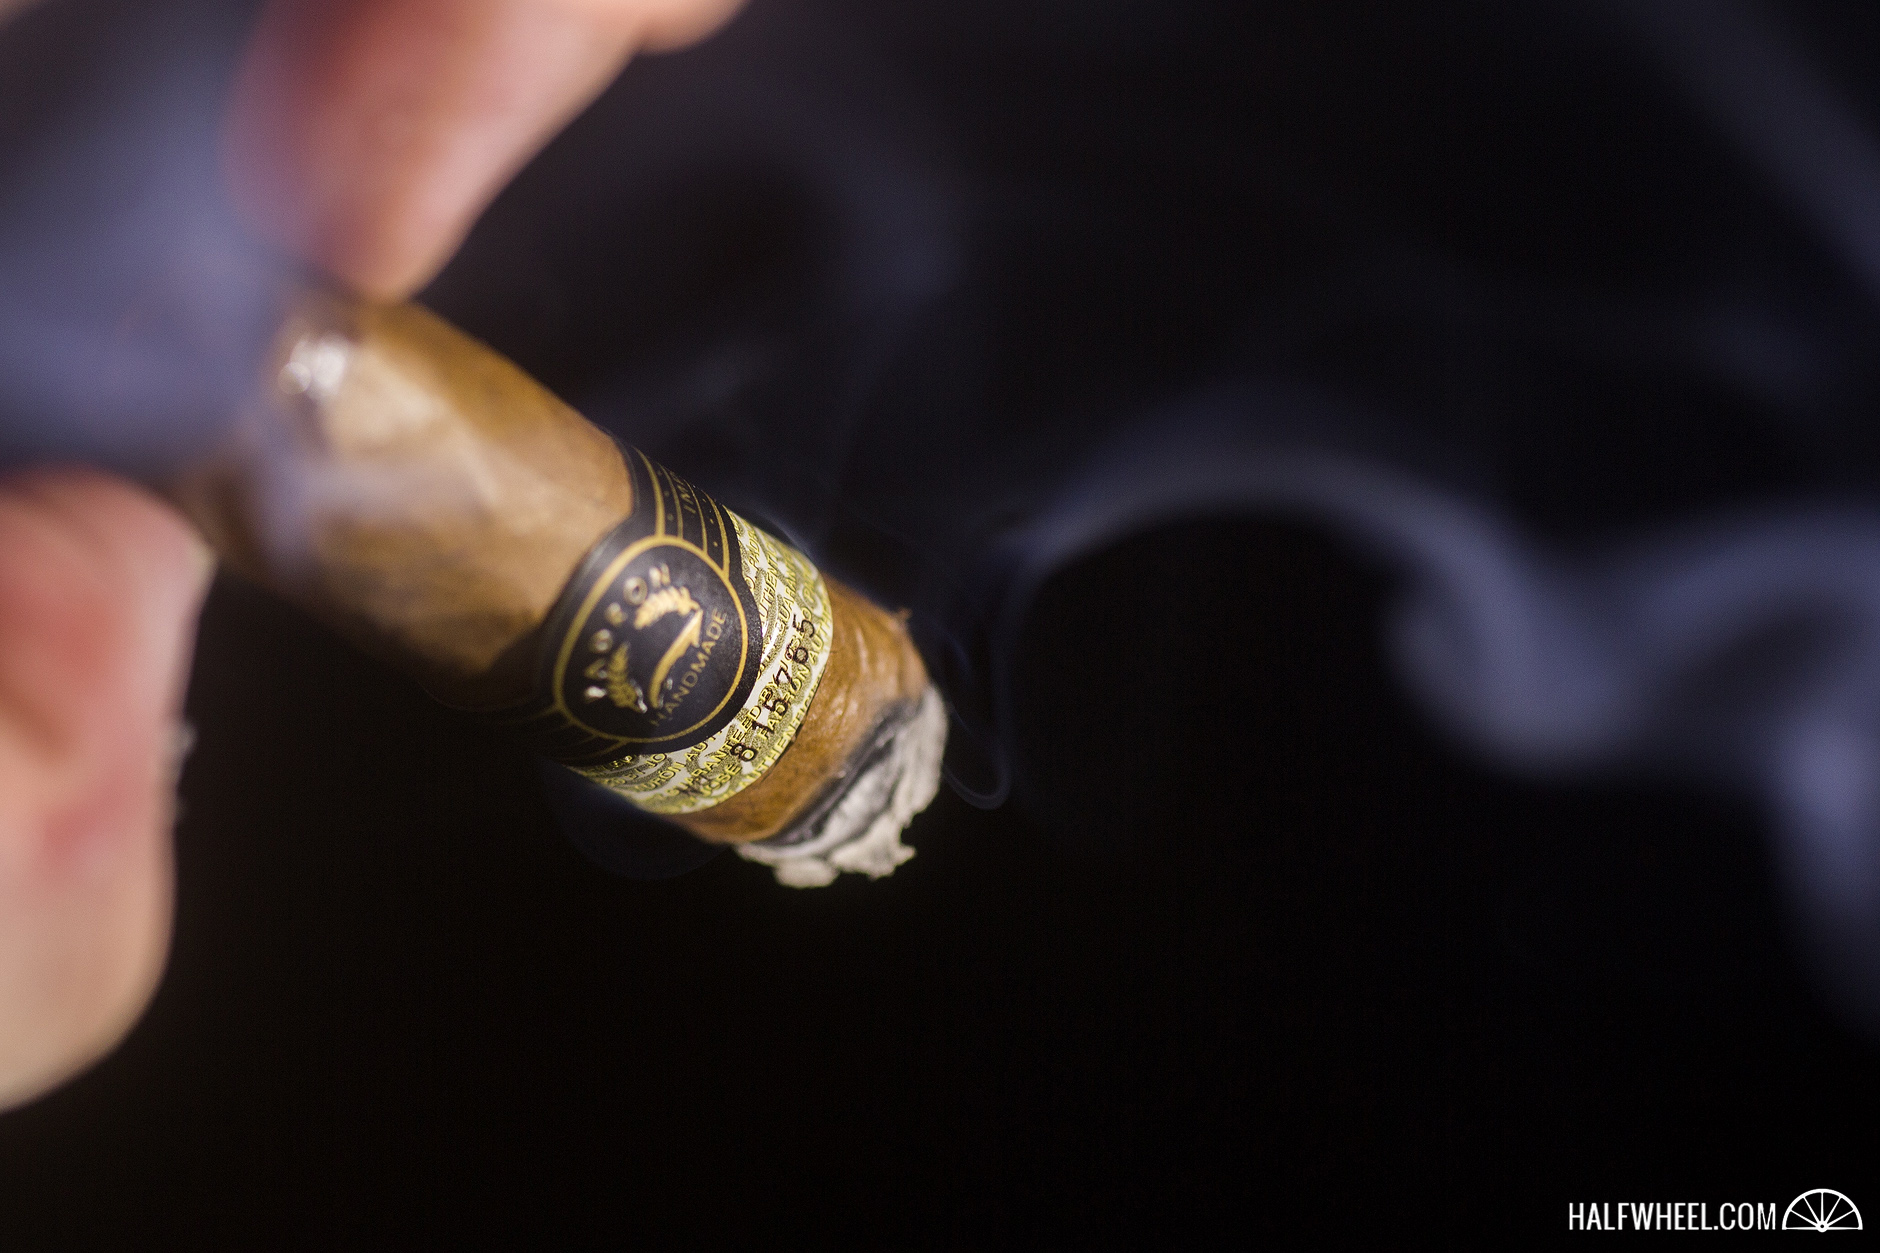 Jose O. Padron 89 Birthday Blend Natural 3